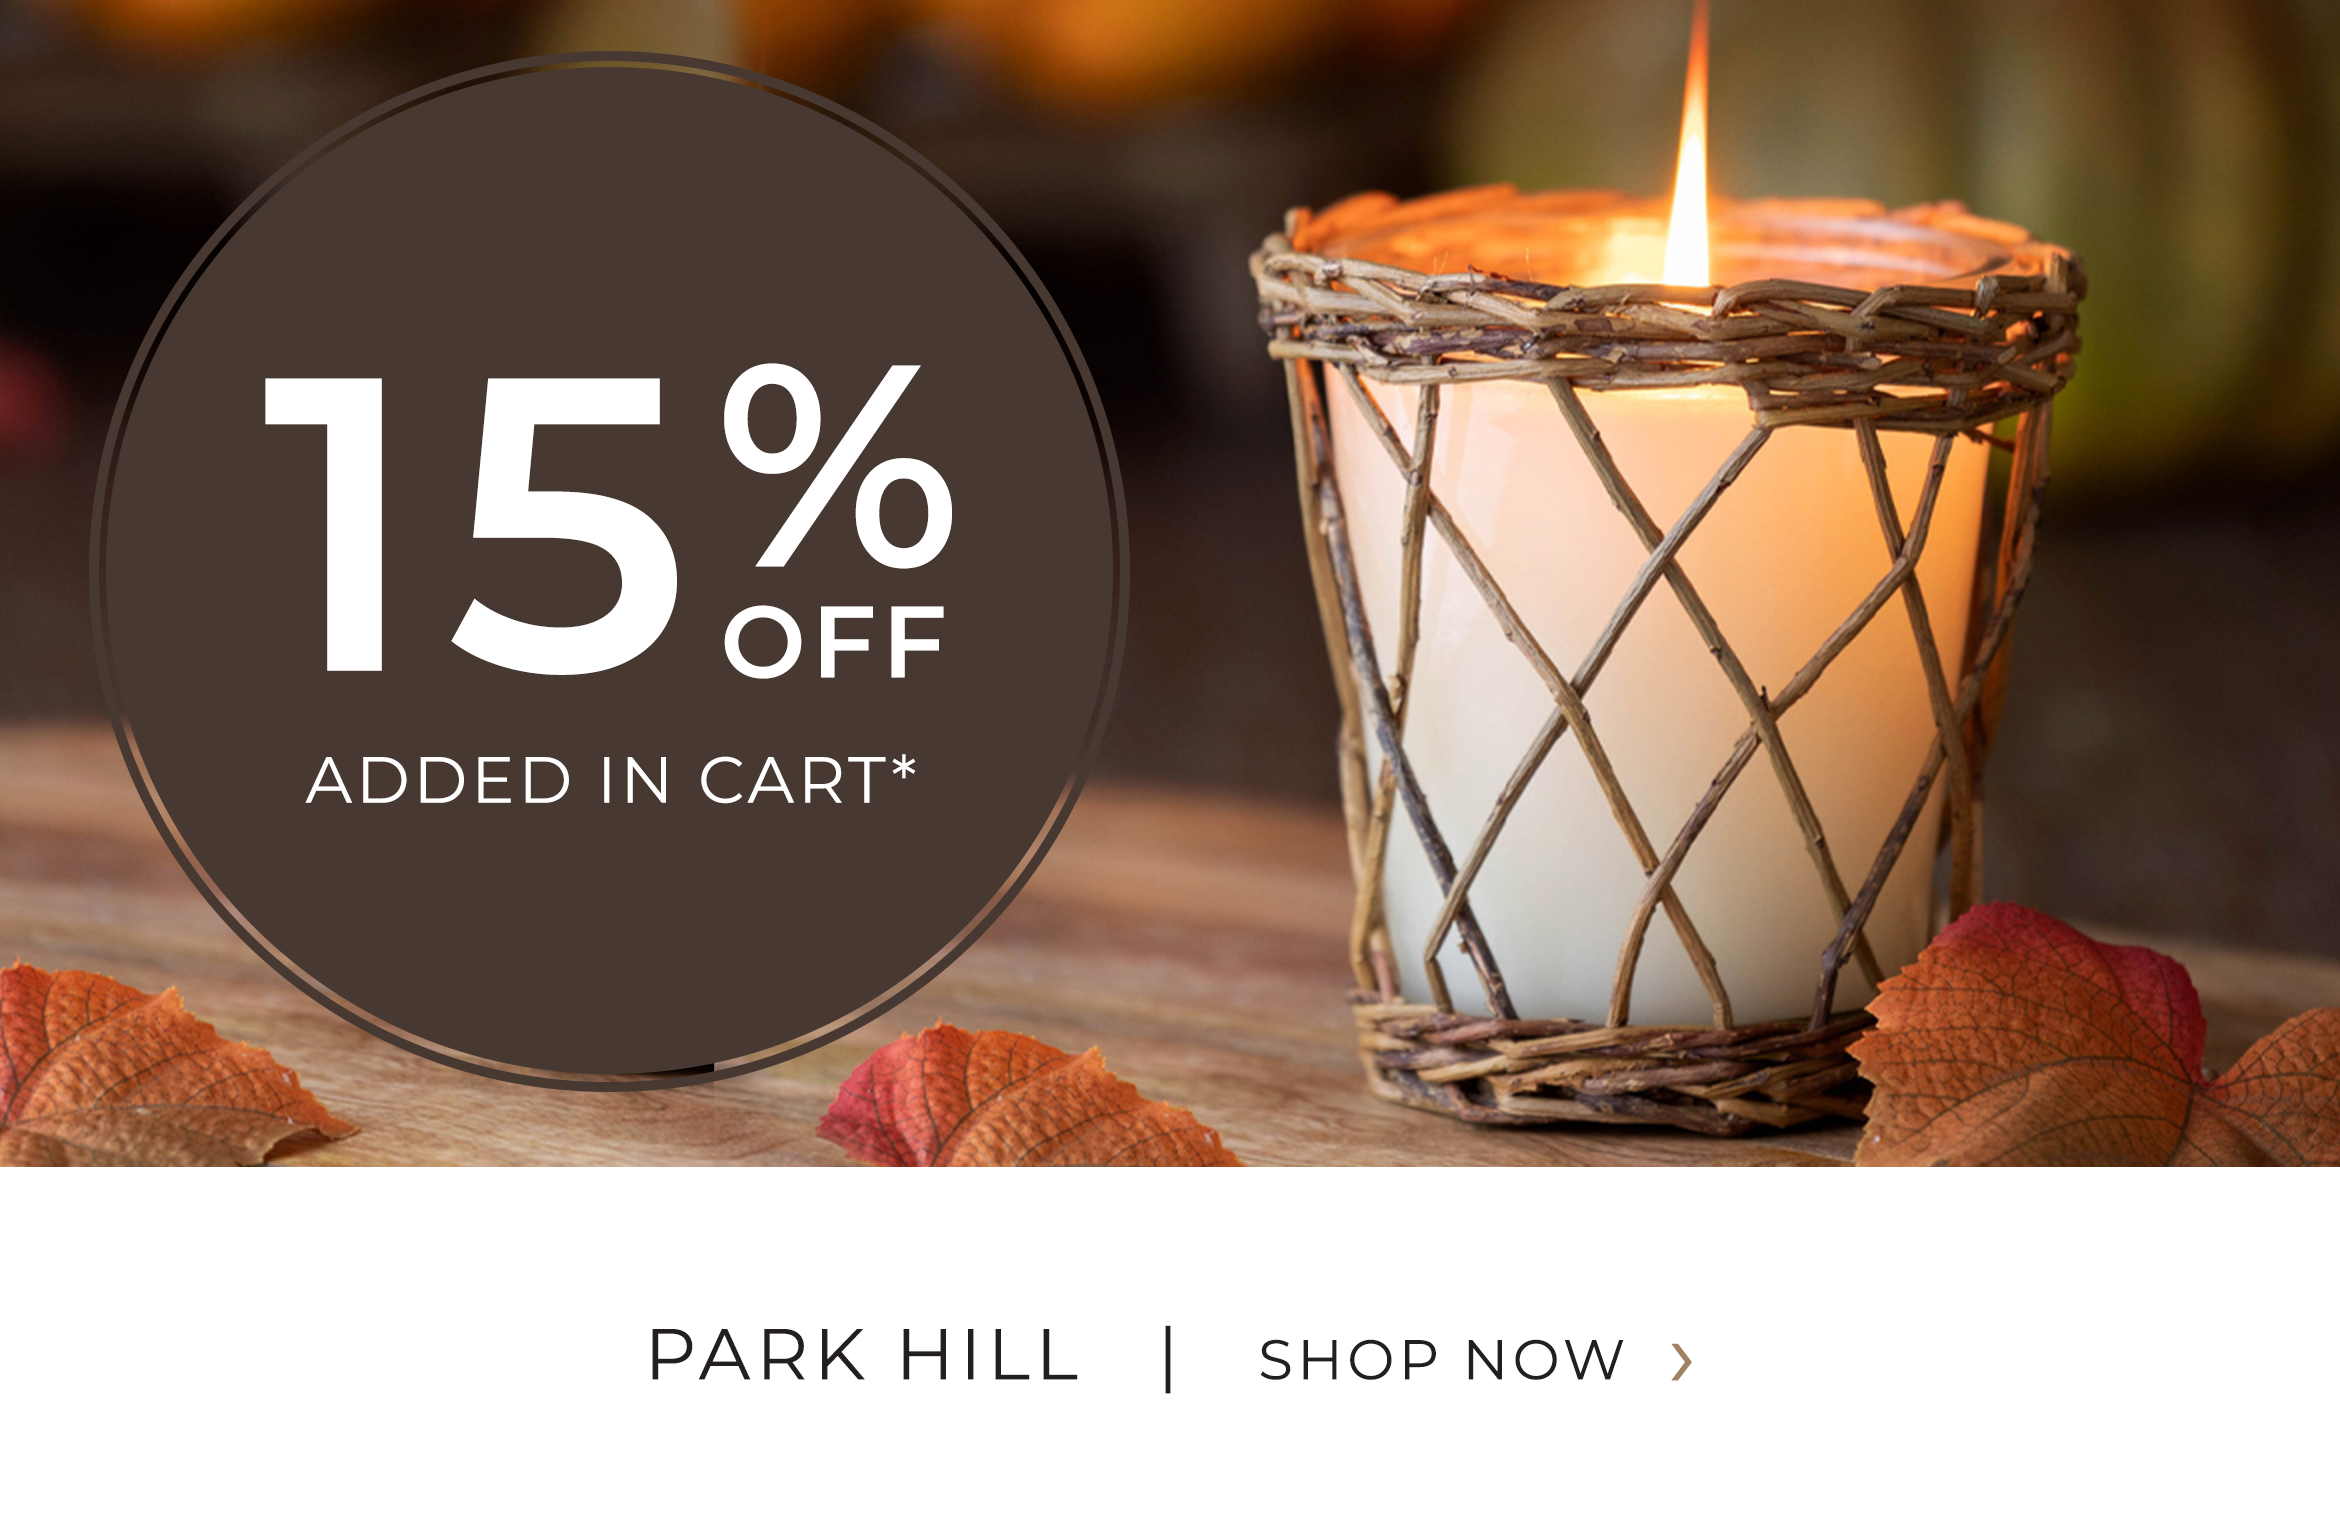 Park Hill - 15 Percent OFF Added in cart